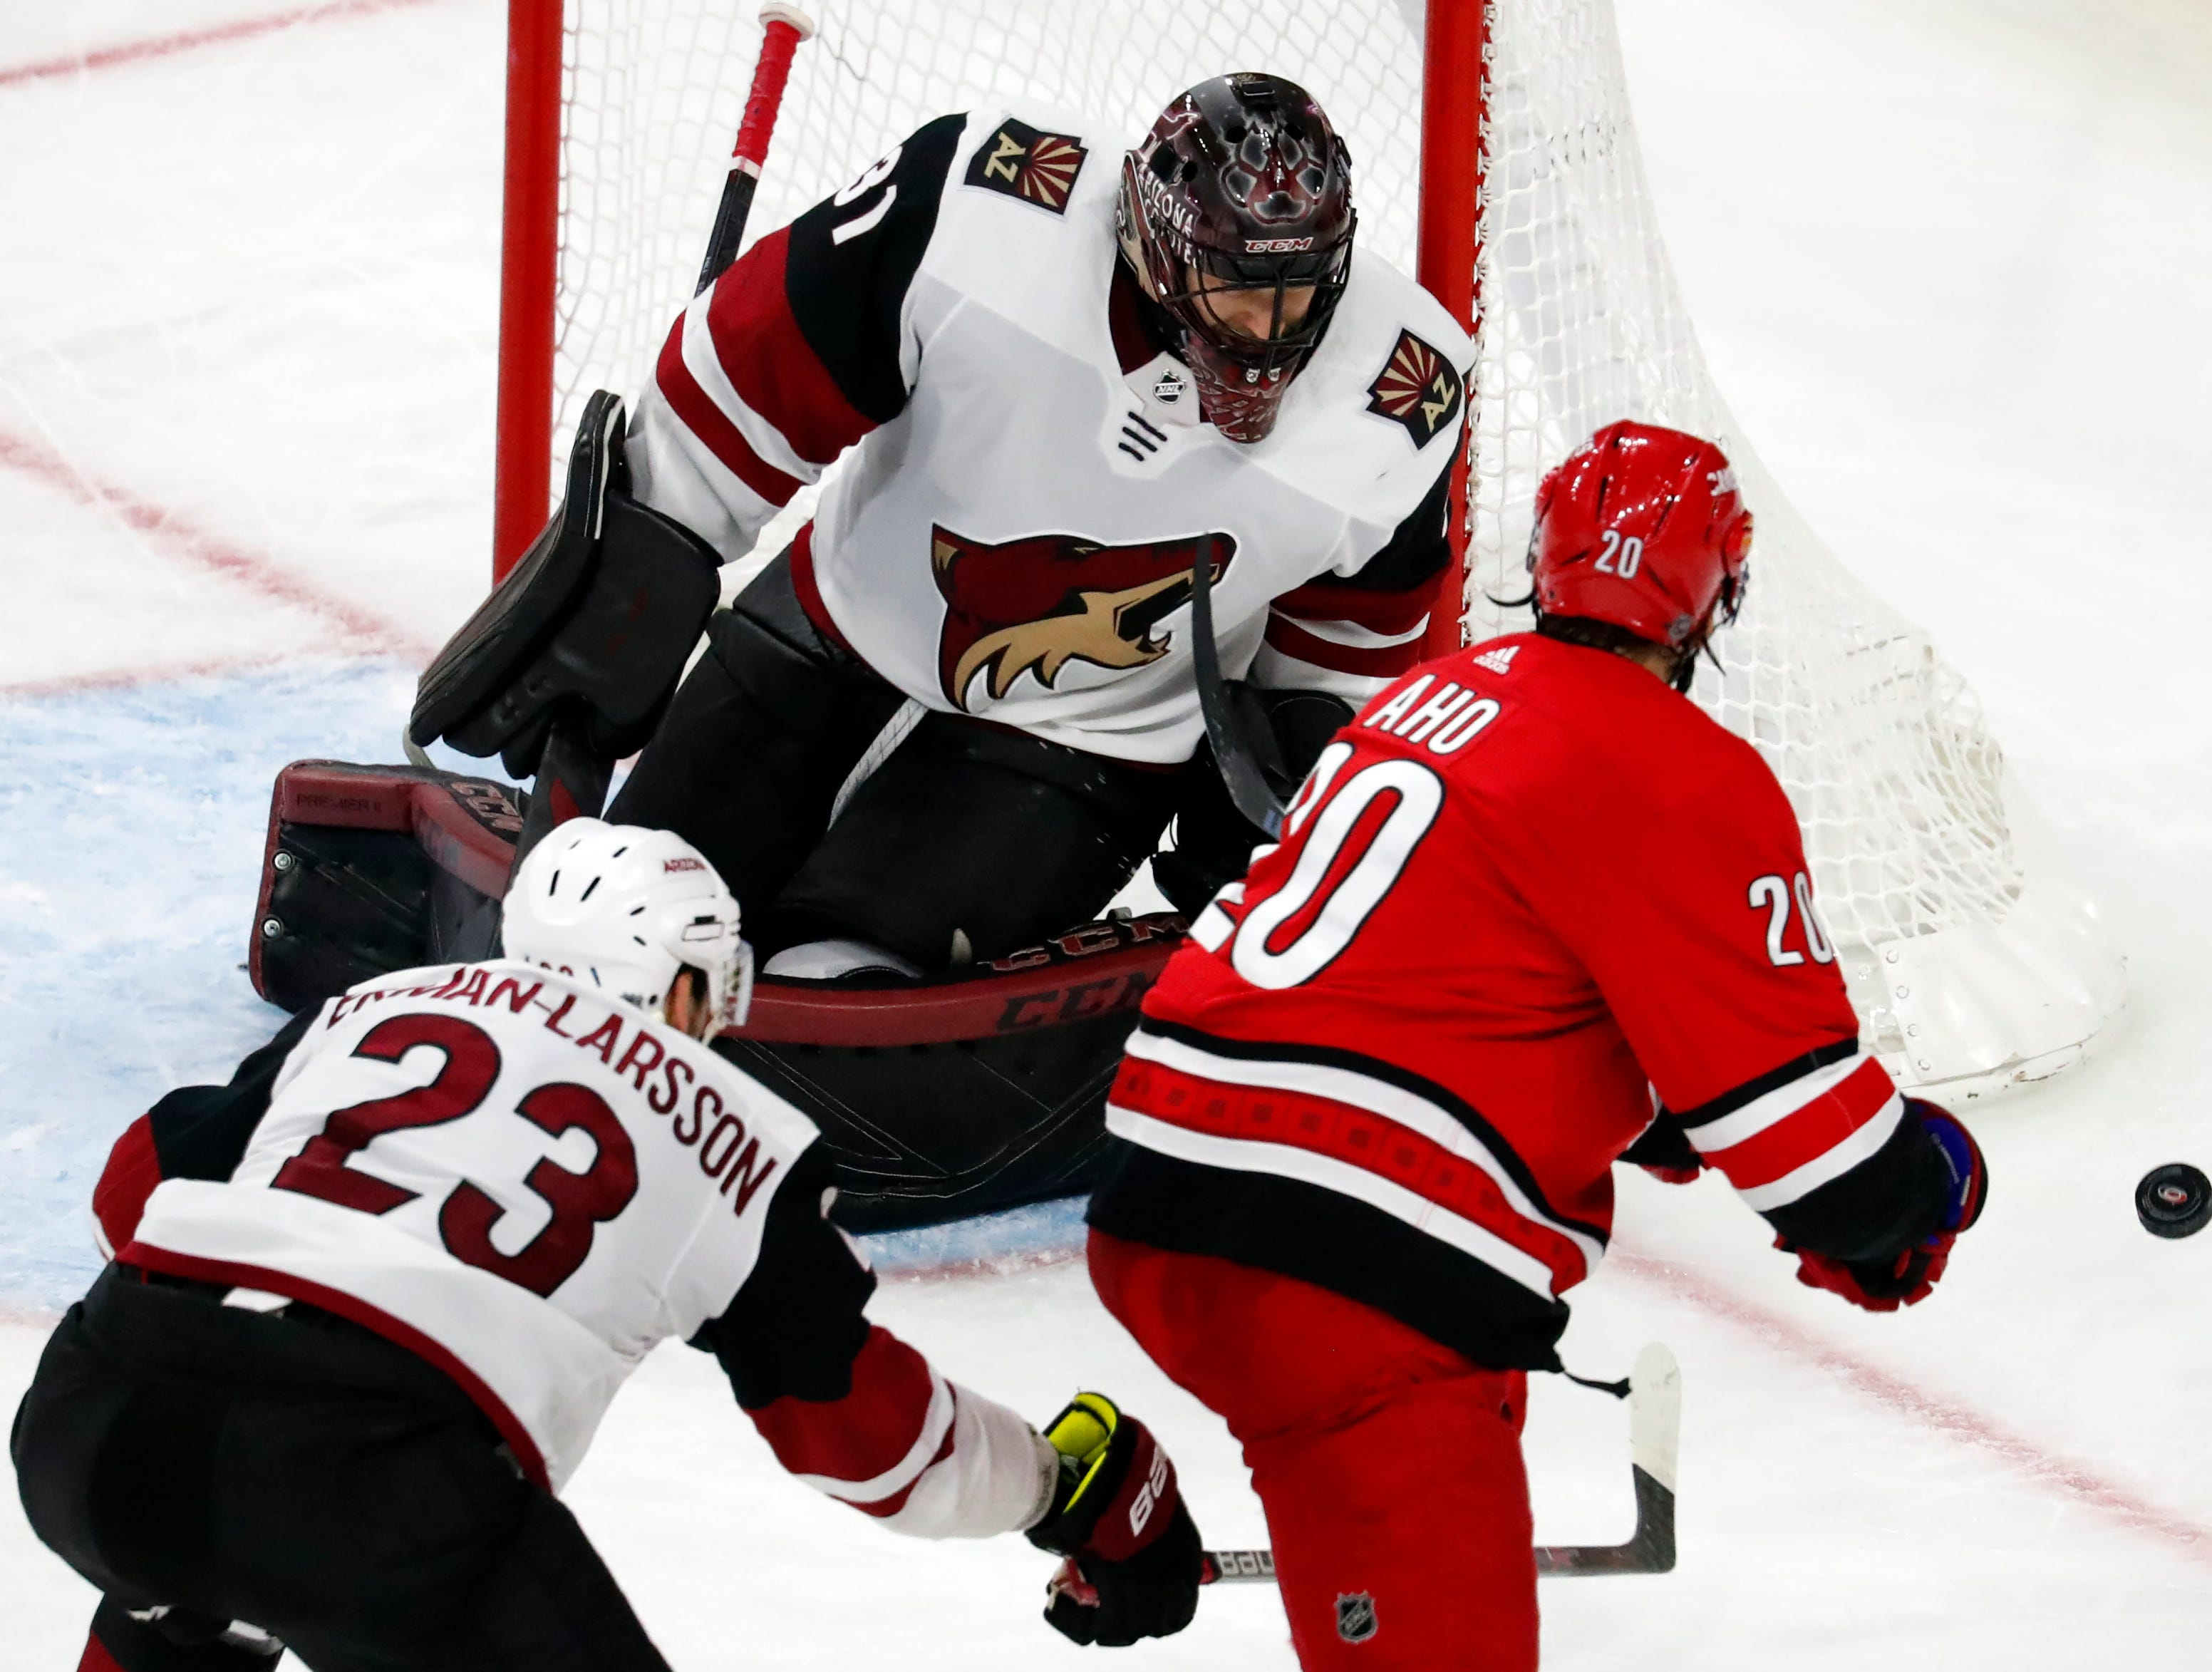 Arizona Coyotes goaltender Adin Hill (31) turns away a shot by Carolina Hurricanes' Sebastian Aho (20) with teammate Oliver Ekman-Larsson (23) nearby during the third period of an NHL hockey game, Sunday, Dec. 16, 2018, in Raleigh, N.C.